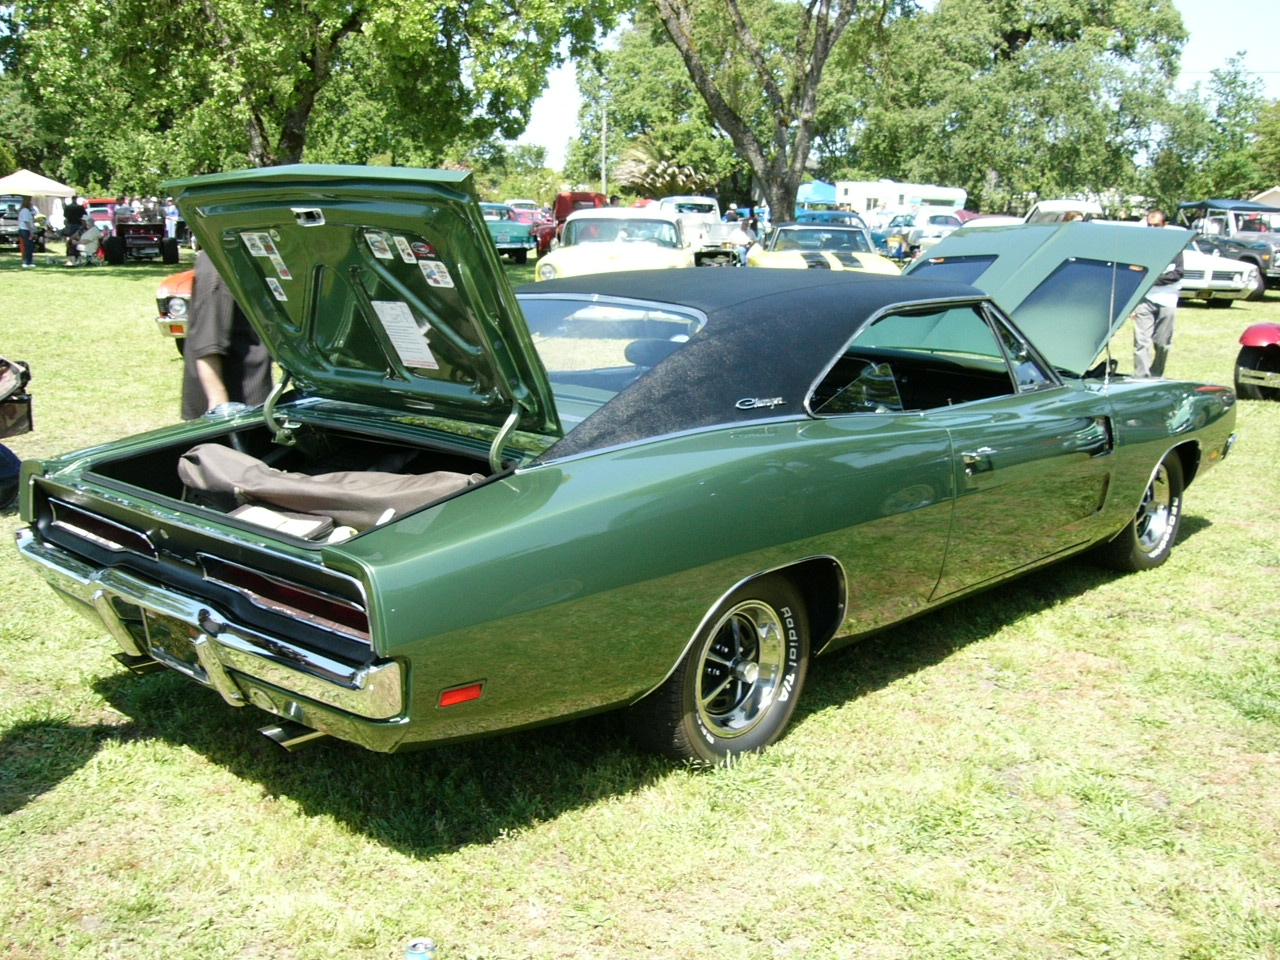 1969 Dodge Charger right side